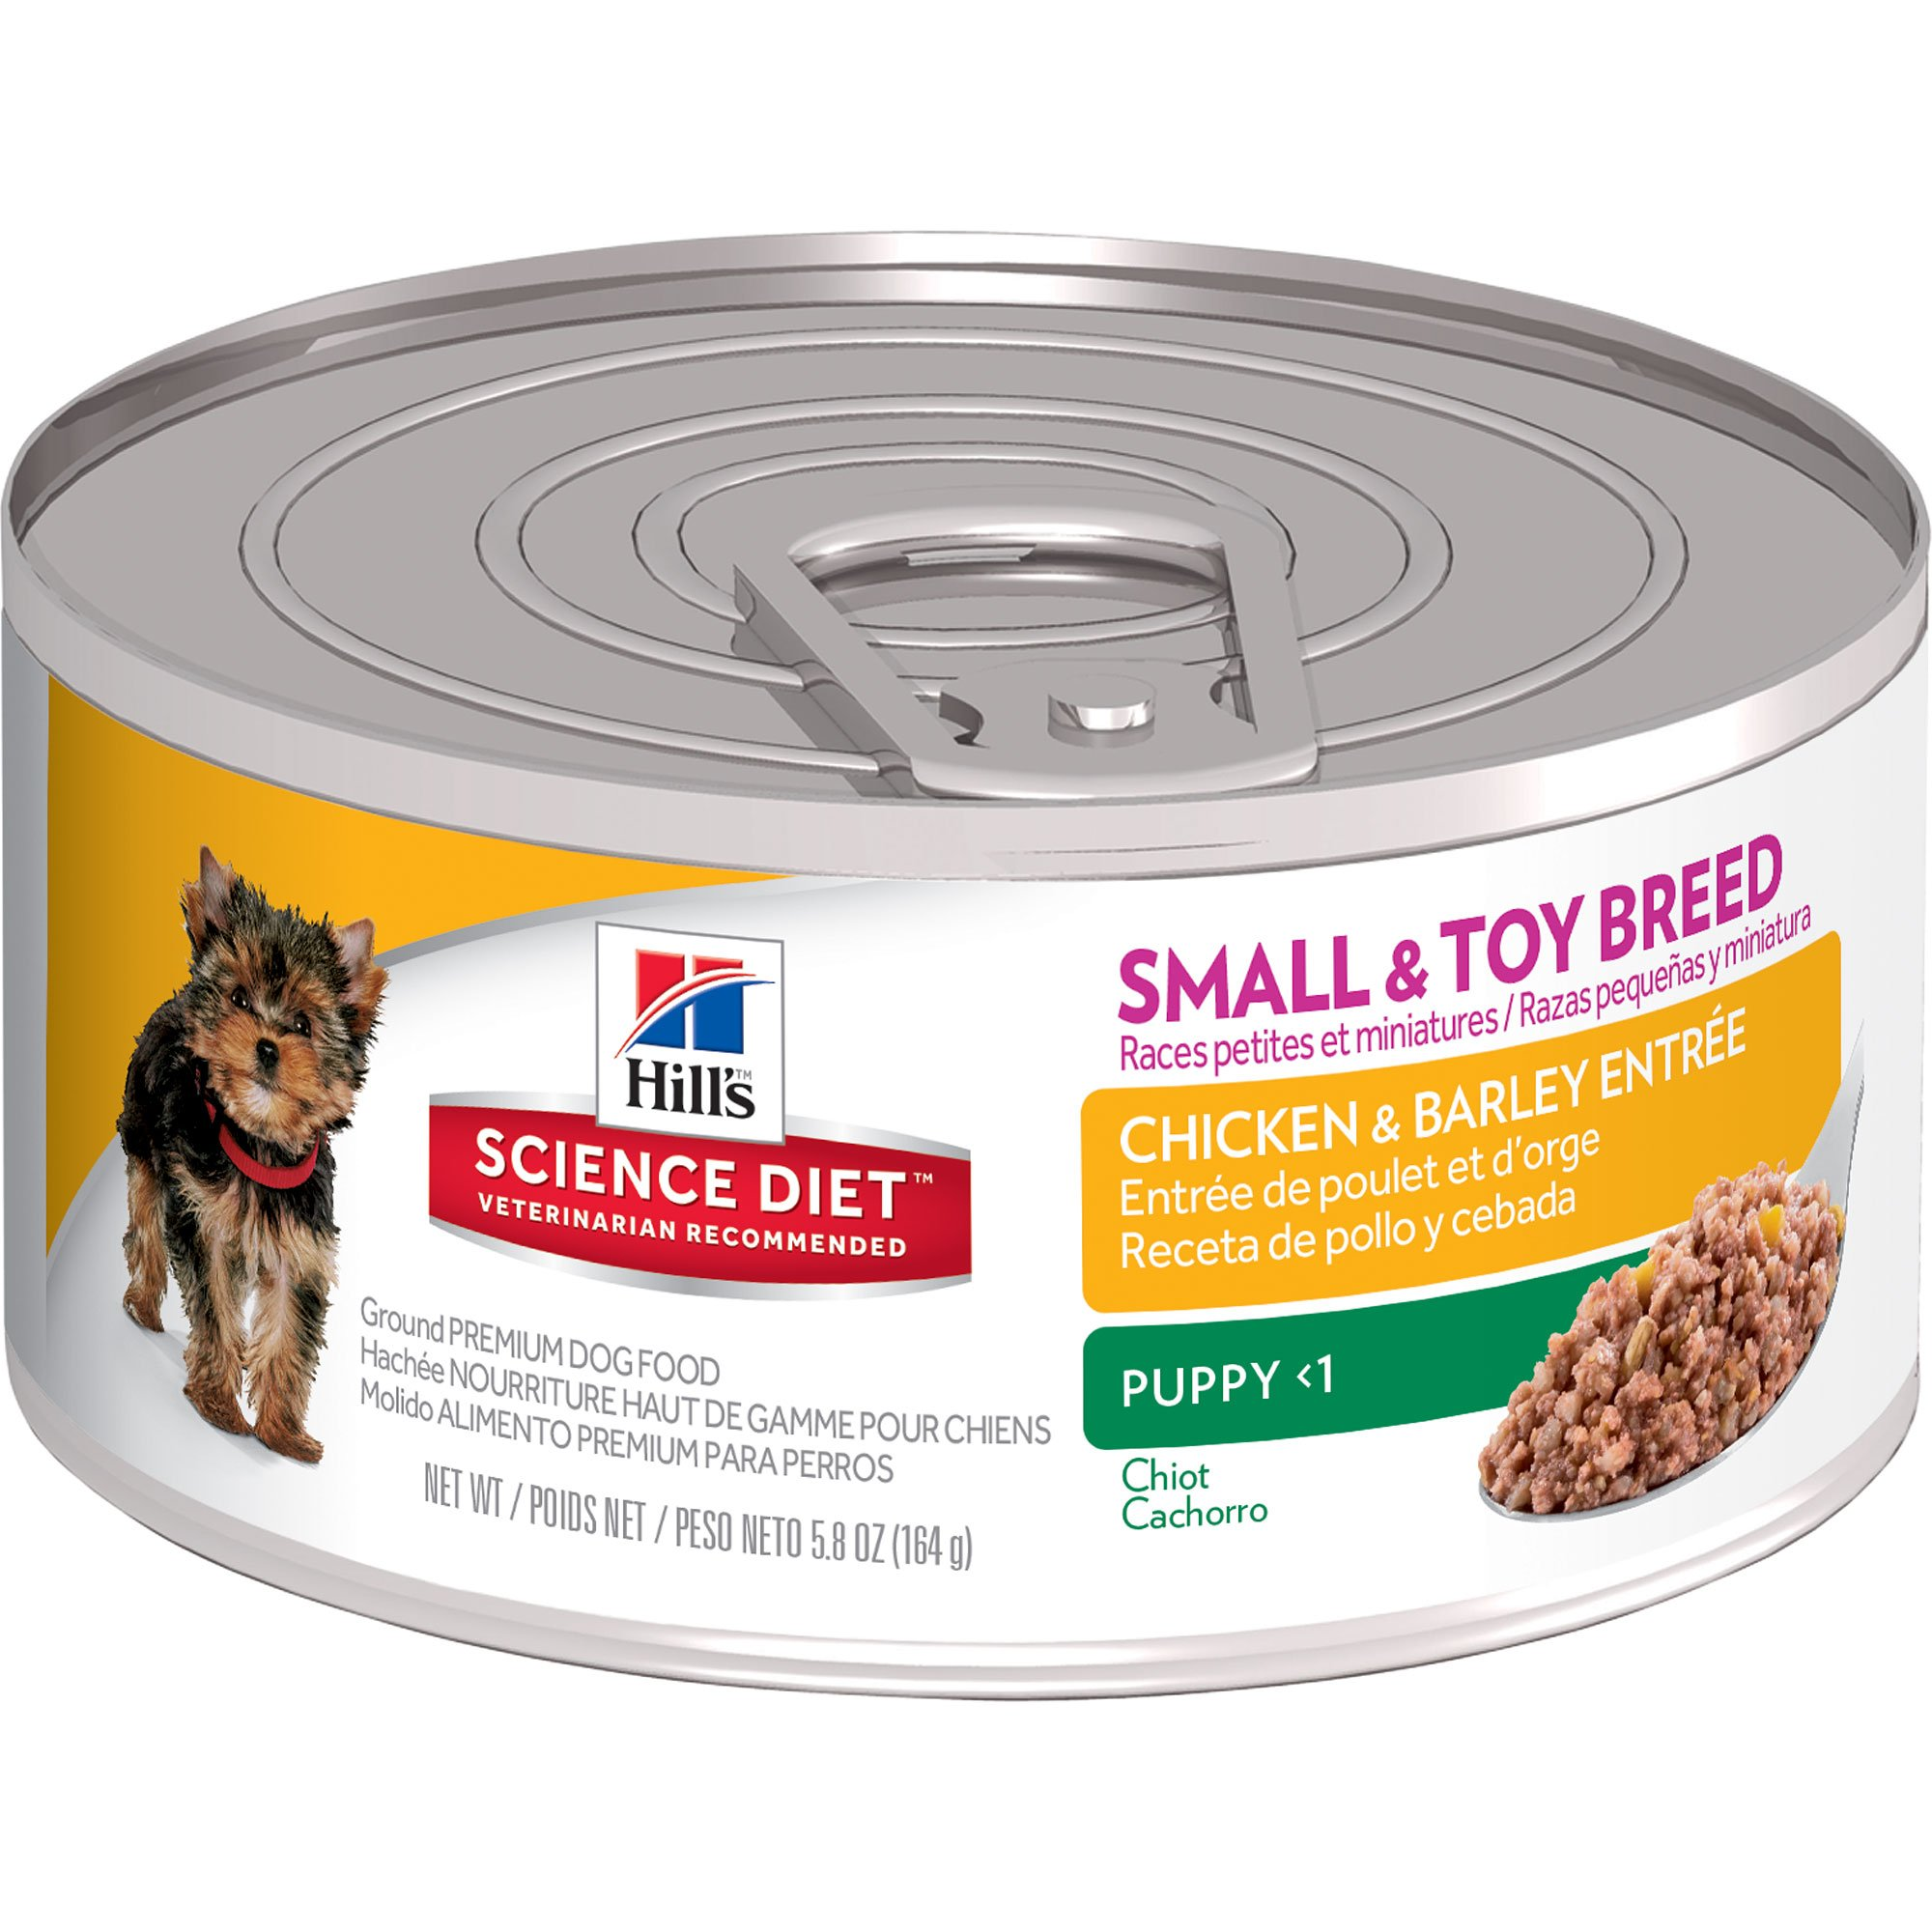 Hill's Science Diet Savory Chicken Canned Small & Toy Puppy Food